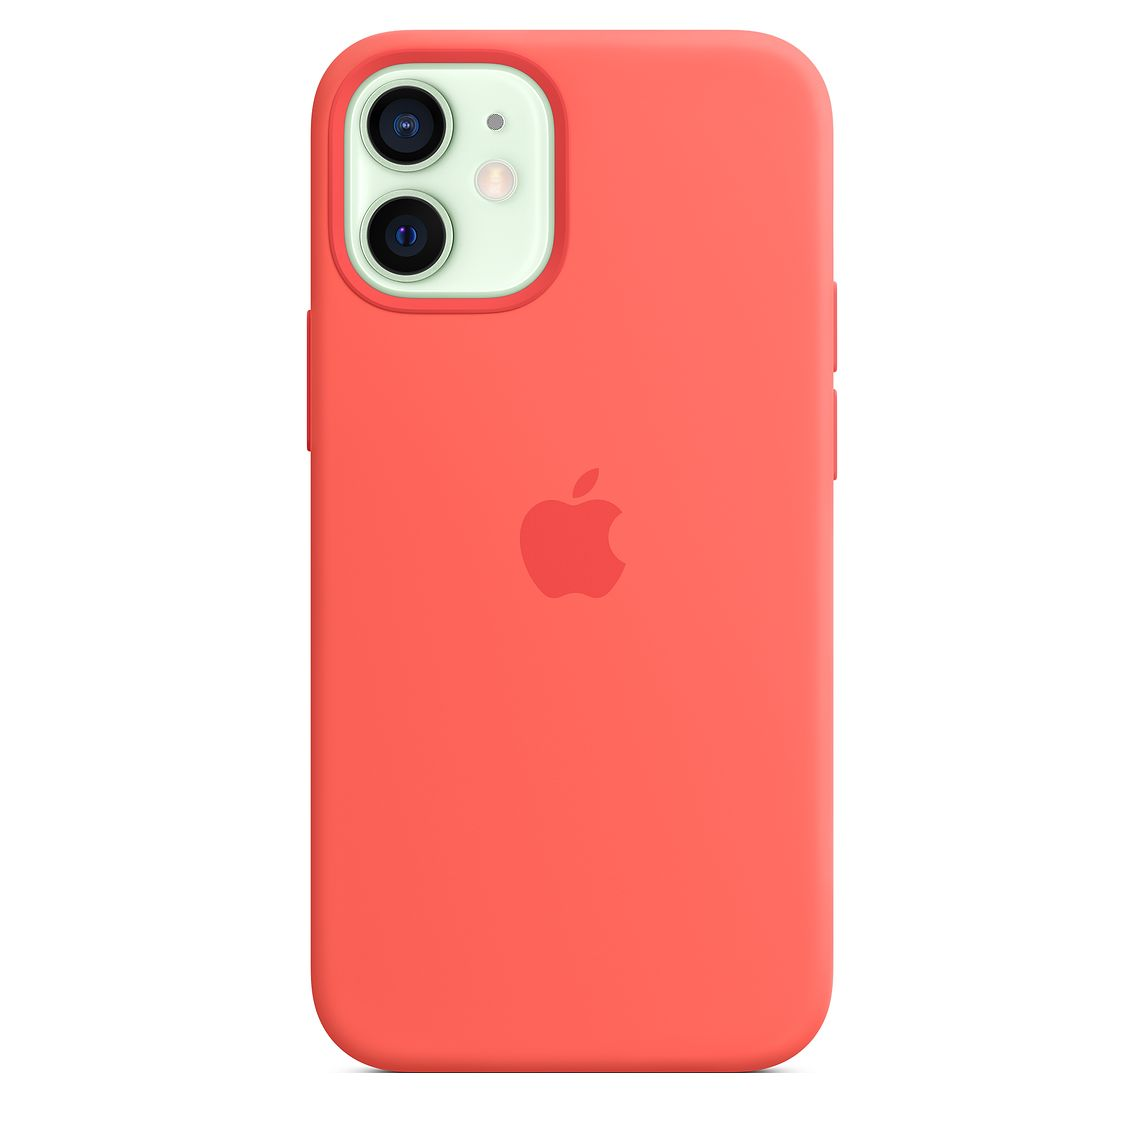 - iPhone 12 mini Silicone Case with MagSafe / Rosa Cítrico 5